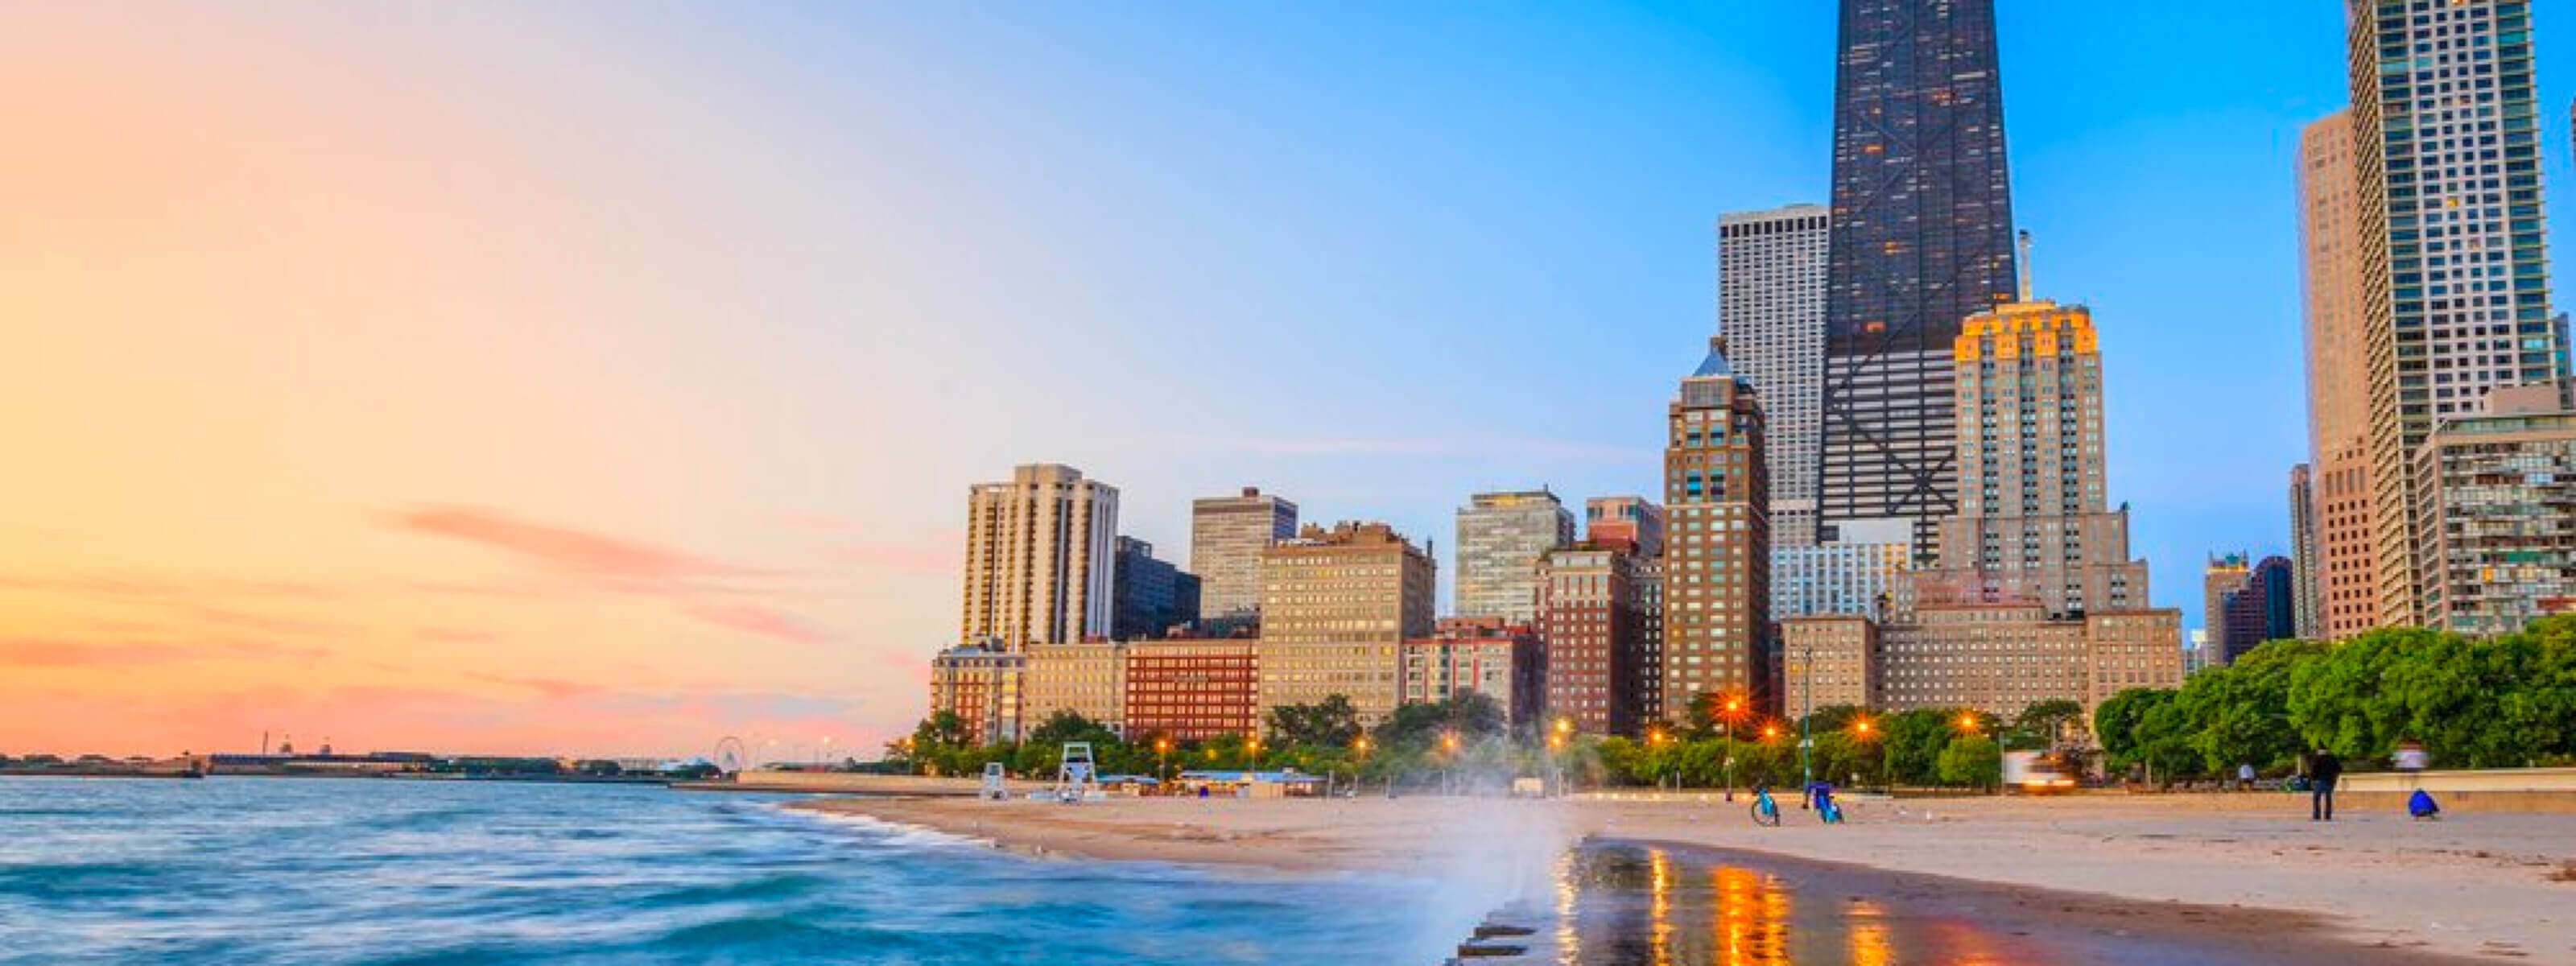 YachtLife's top Yachting Activities in Chicago - Lincoln Park